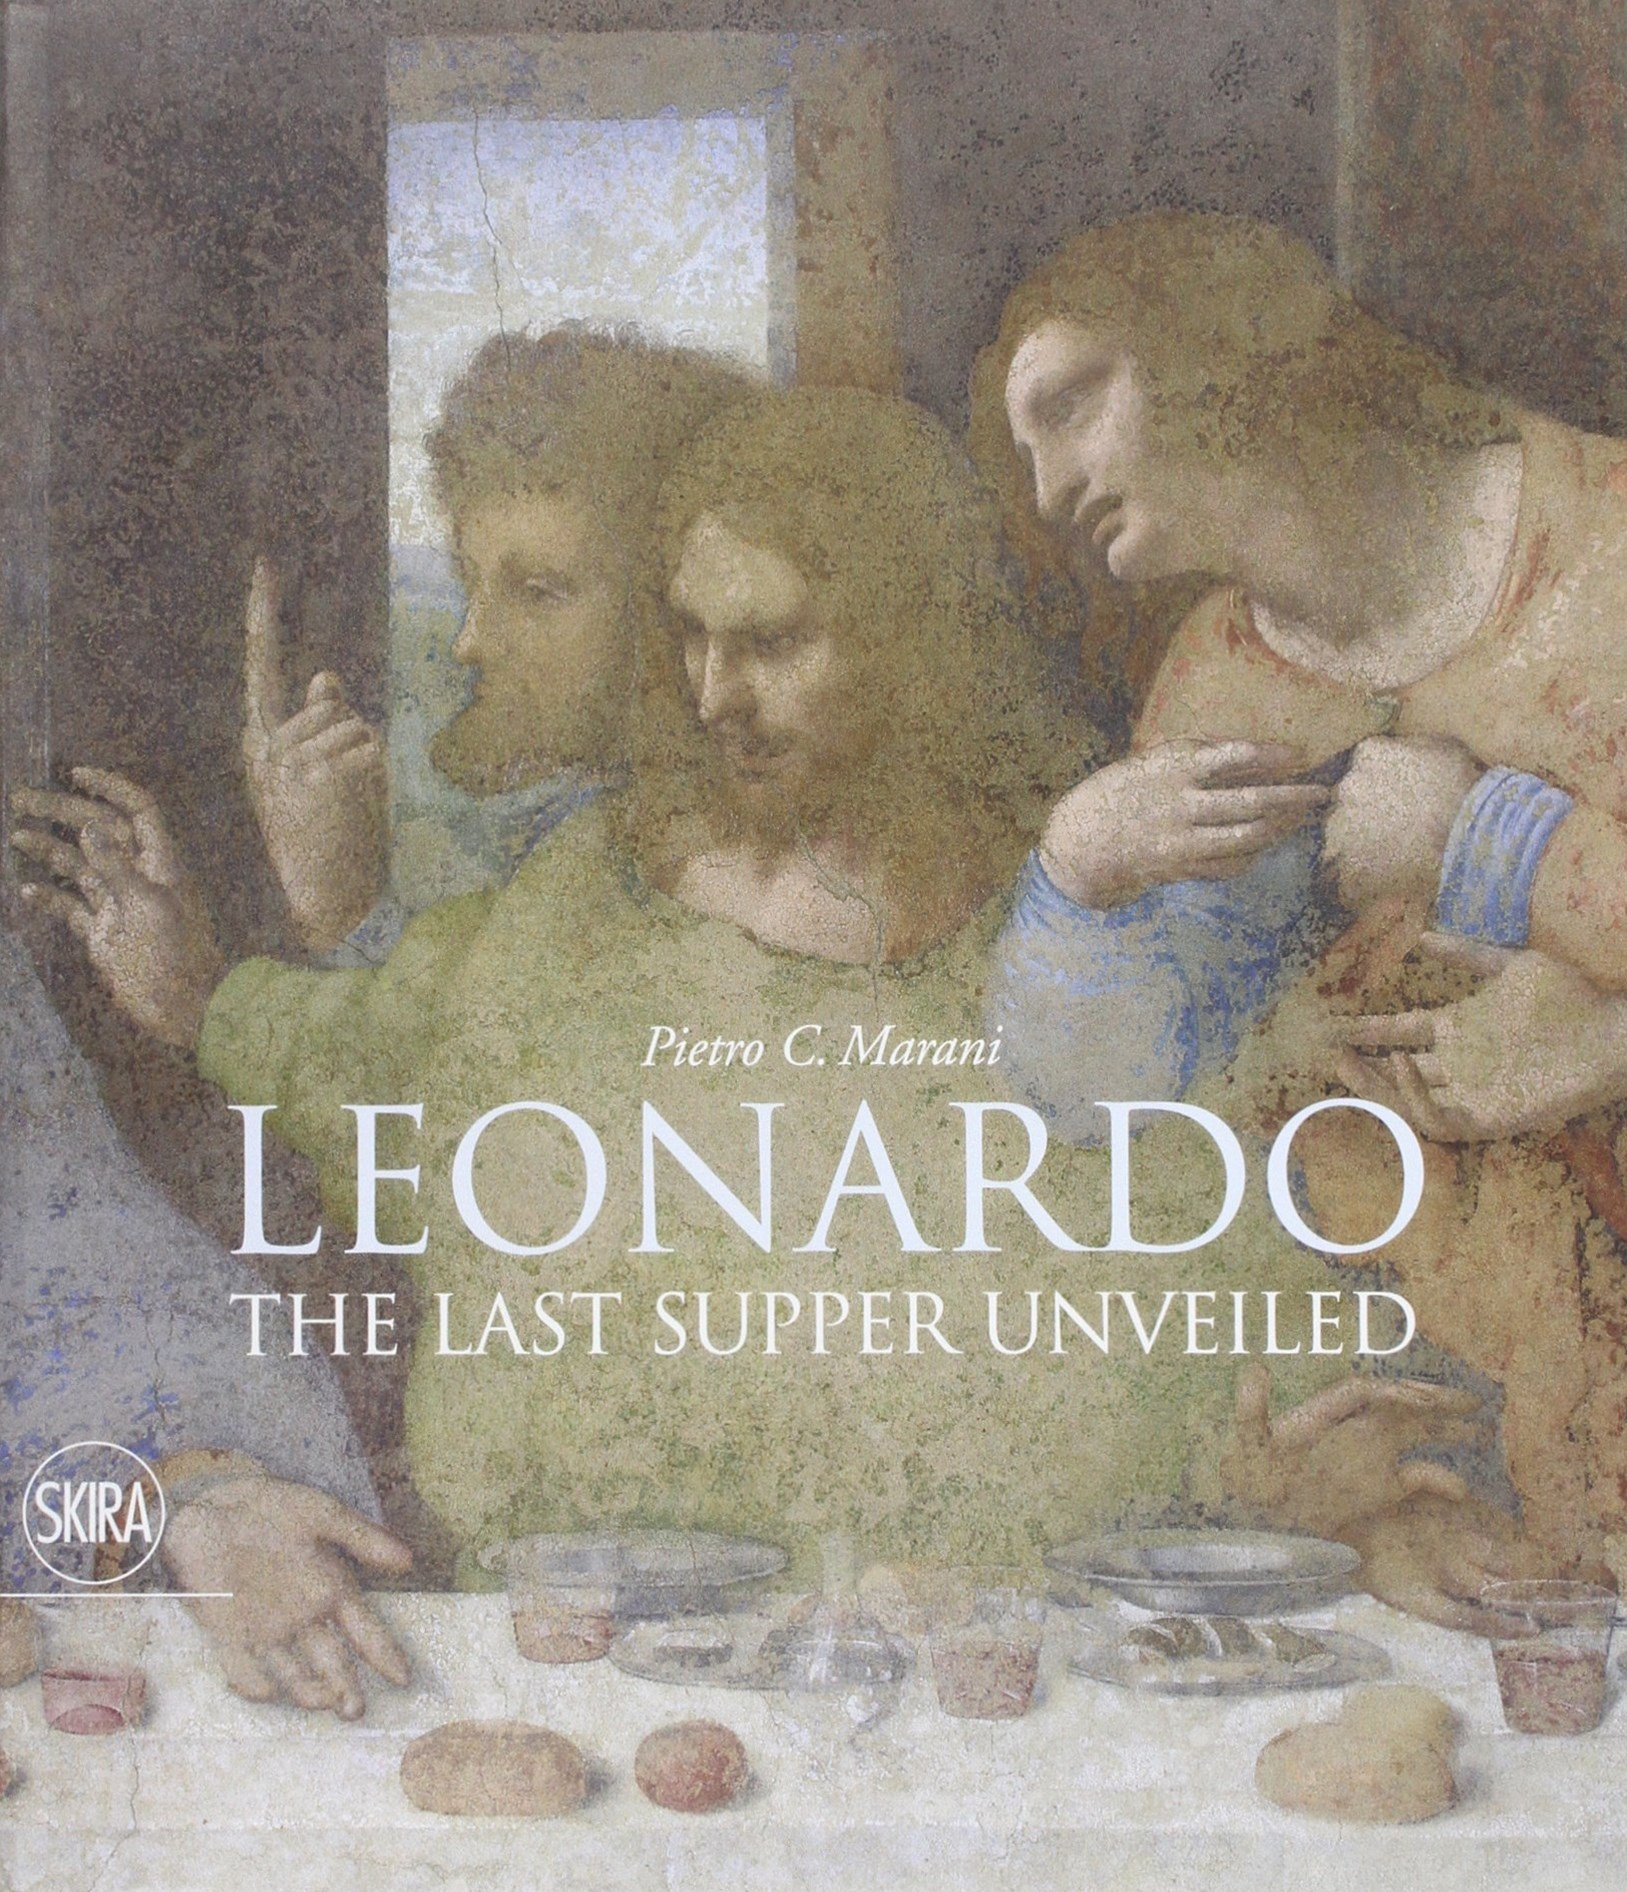 Leonardo:The Last Supper Unveiled